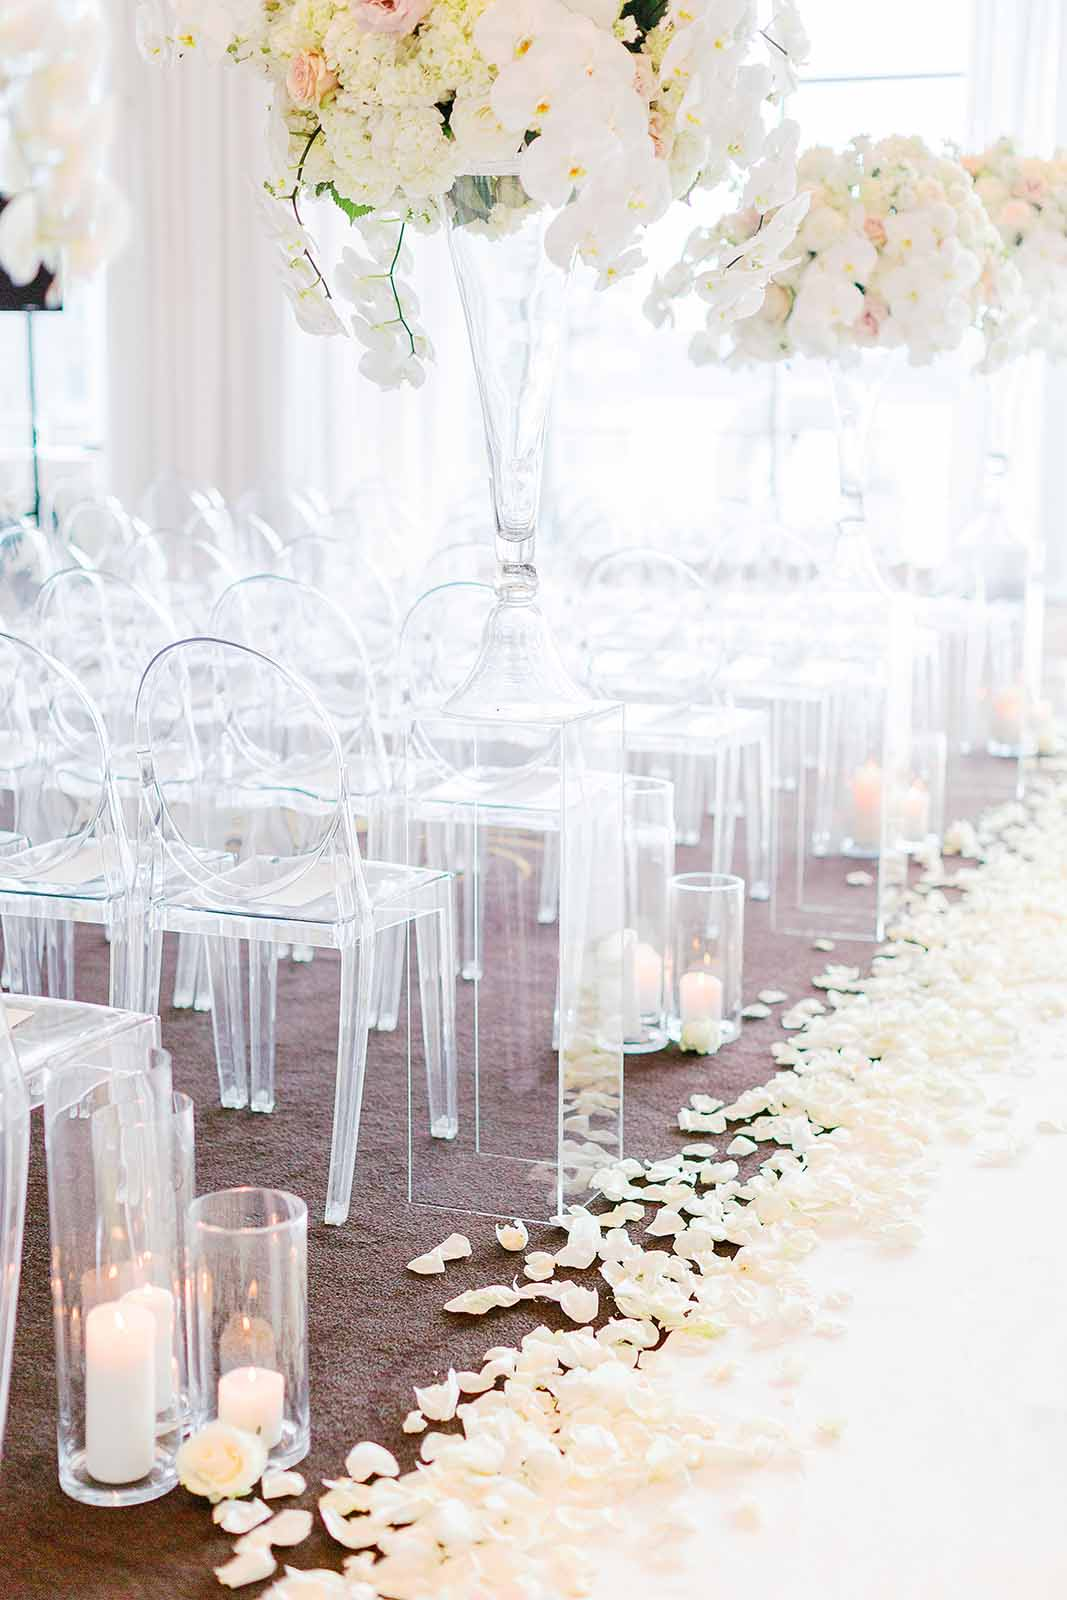 Ballroom wedding ceremony with all white floral arrangements lining the aisle of lucite ghost chairs with aisle runner and white roses petals Flora Nova Design Seattle